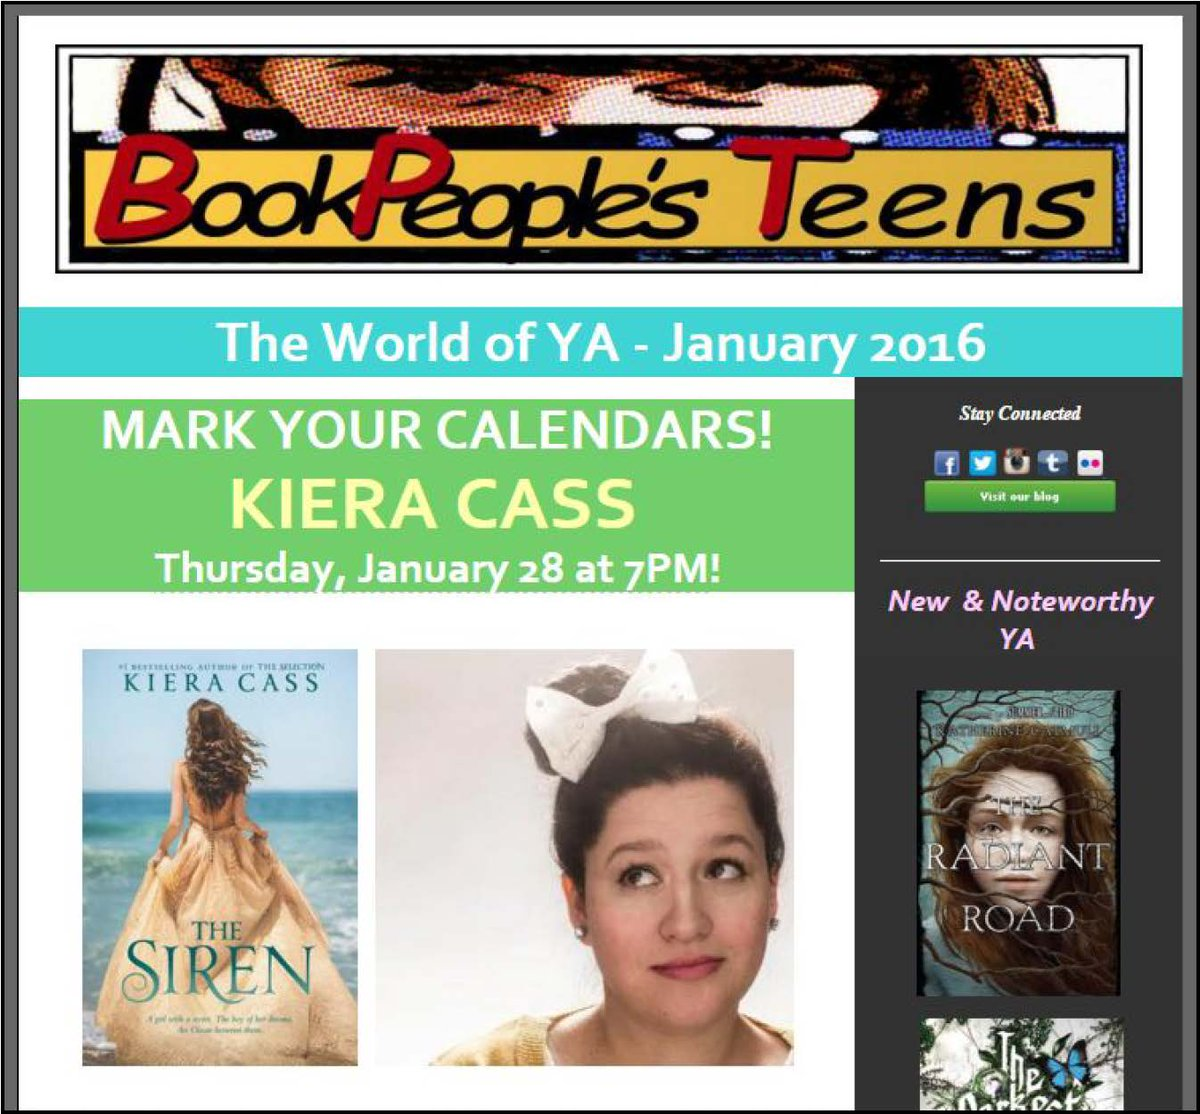 Our January #YAlit enews just went out featuring @kieracass, here 1/28 w/ SIREN! https://t.co/TTvI0apIQO https://t.co/Mqo7soIXgG